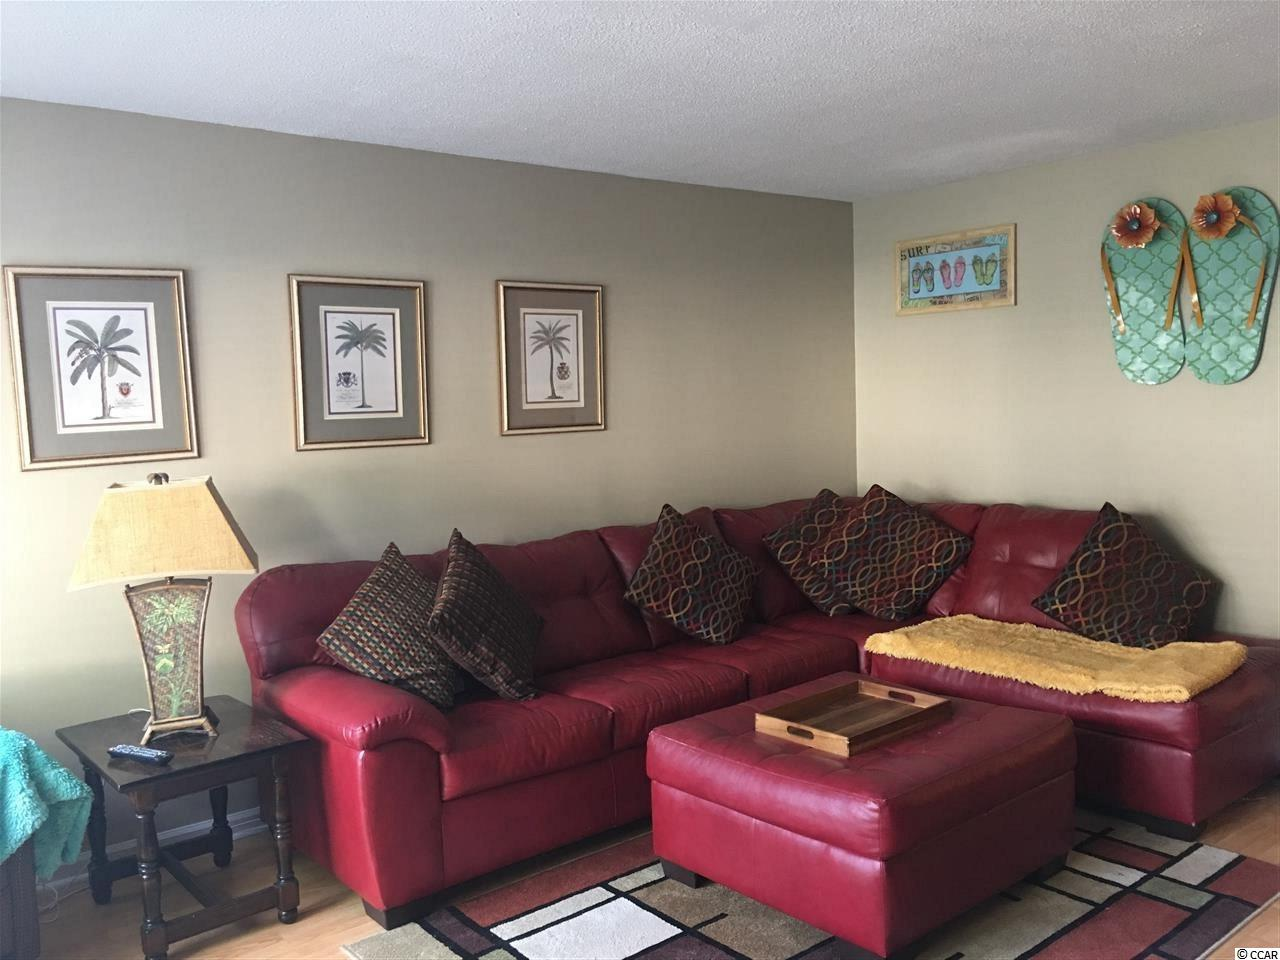 NORTHWIND condo for sale in Myrtle Beach, SC